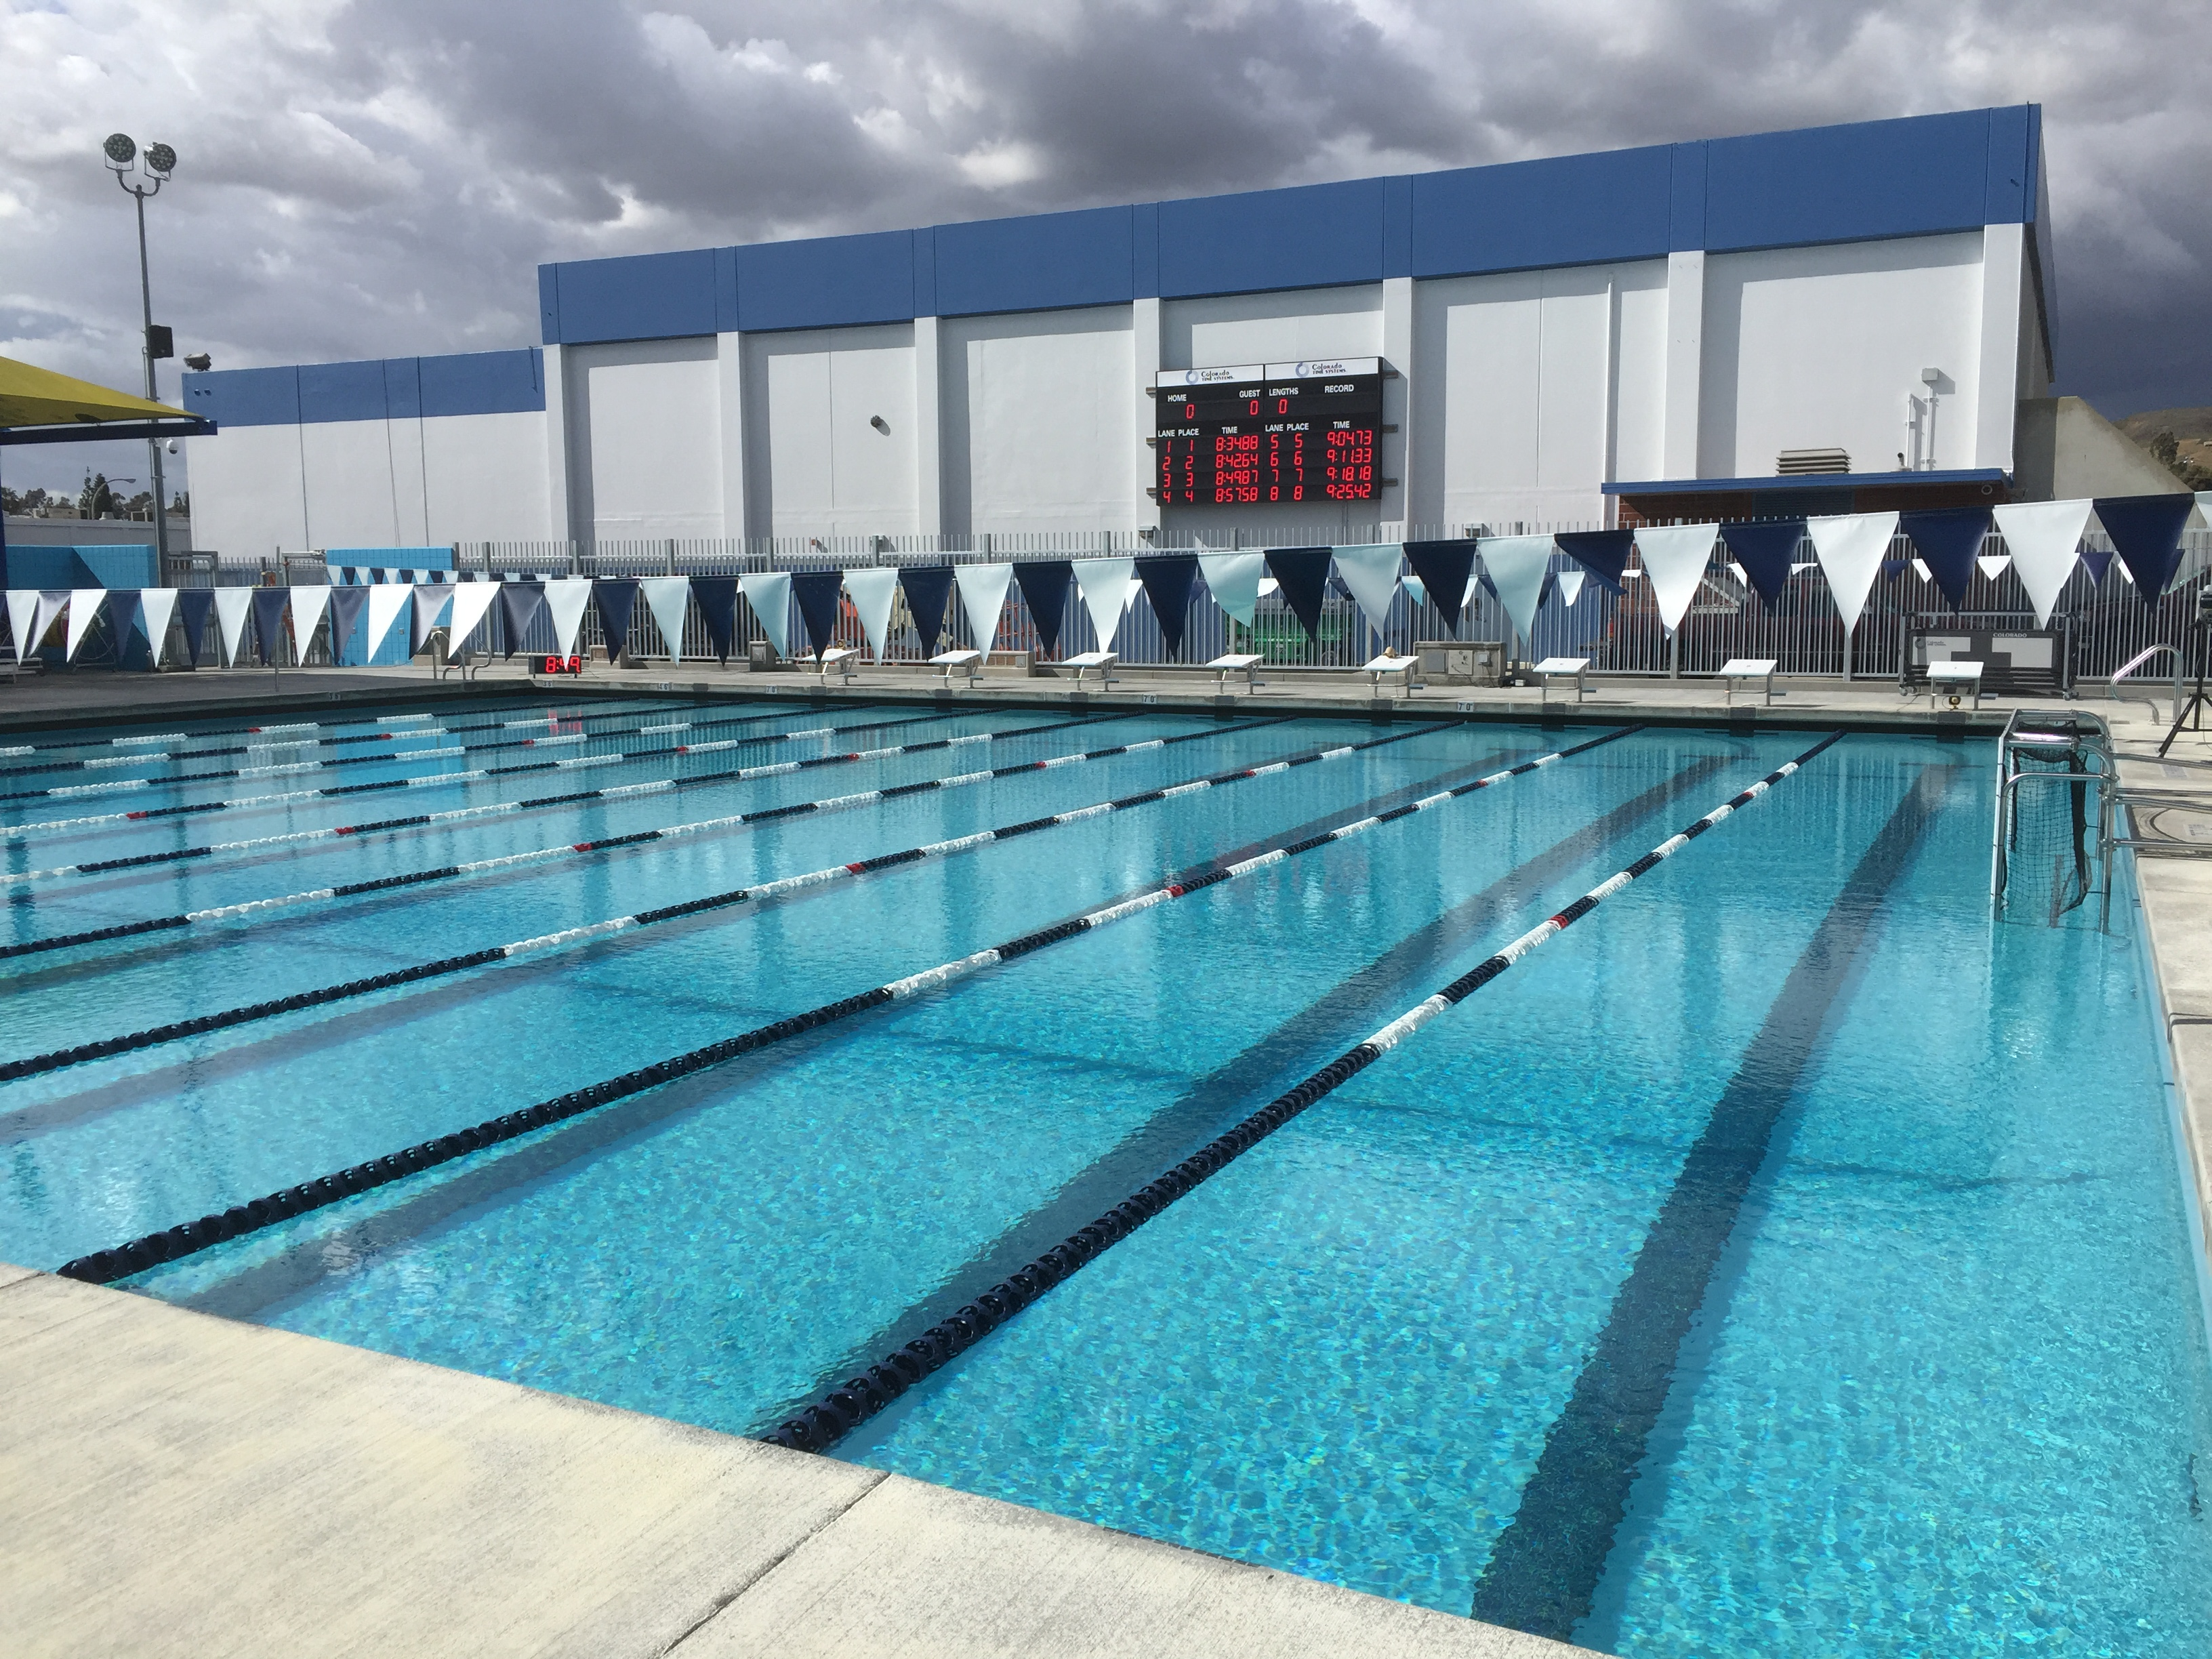 Whs Dive In Day Abcpr Media Group Community News Public Relations And Advertising Services